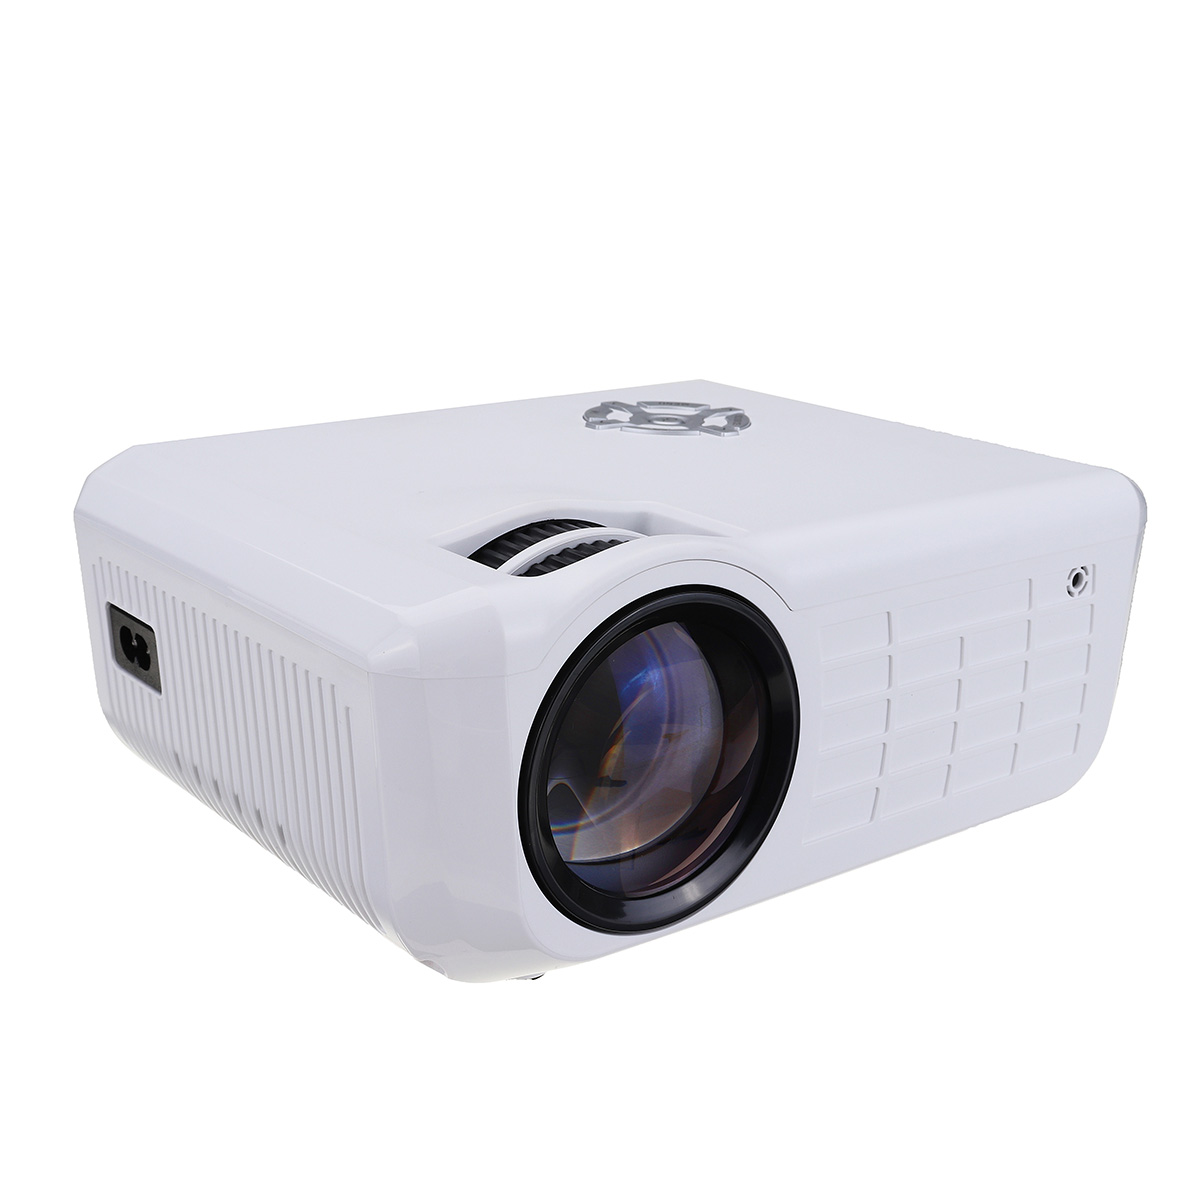 LEORY M28 LCD 2000LM Projector 800x480 Native Resolution With Digital TV Interface Support HDMI USB VGA AVLEORY M28 LCD 2000LM Projector 800x480 Native Resolution With Digital TV Interface Support HDMI USB VGA AV